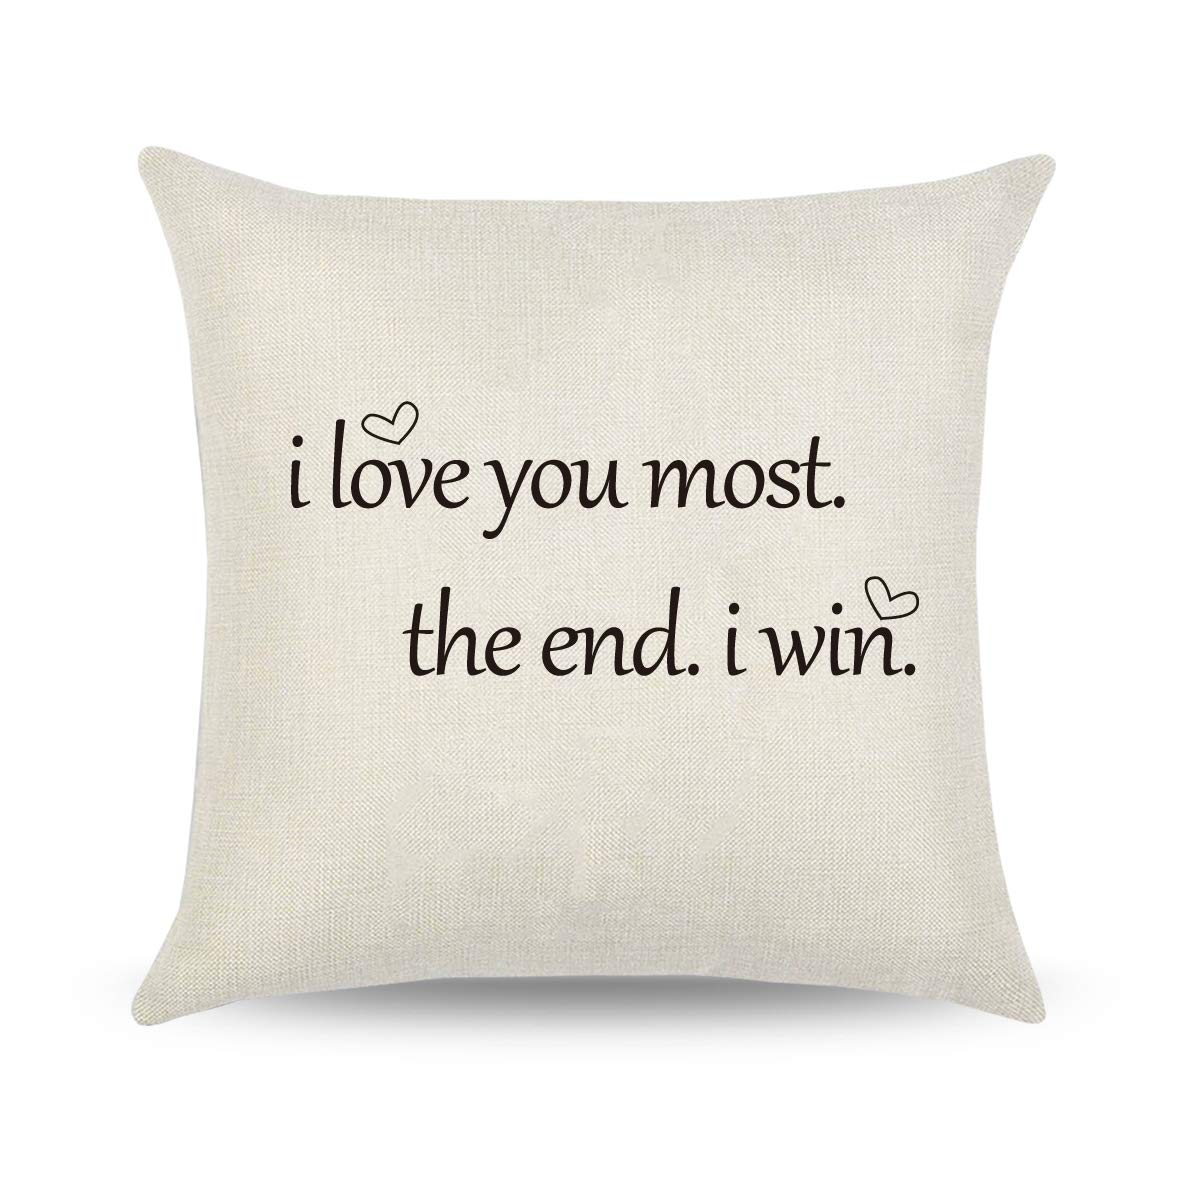 CARRIE HOME Love You More Pillow Covers 18x18 Love Gifts for Girlfriend Decorative Throw Pillow Cover for Home Sofa Couch - gift-siri